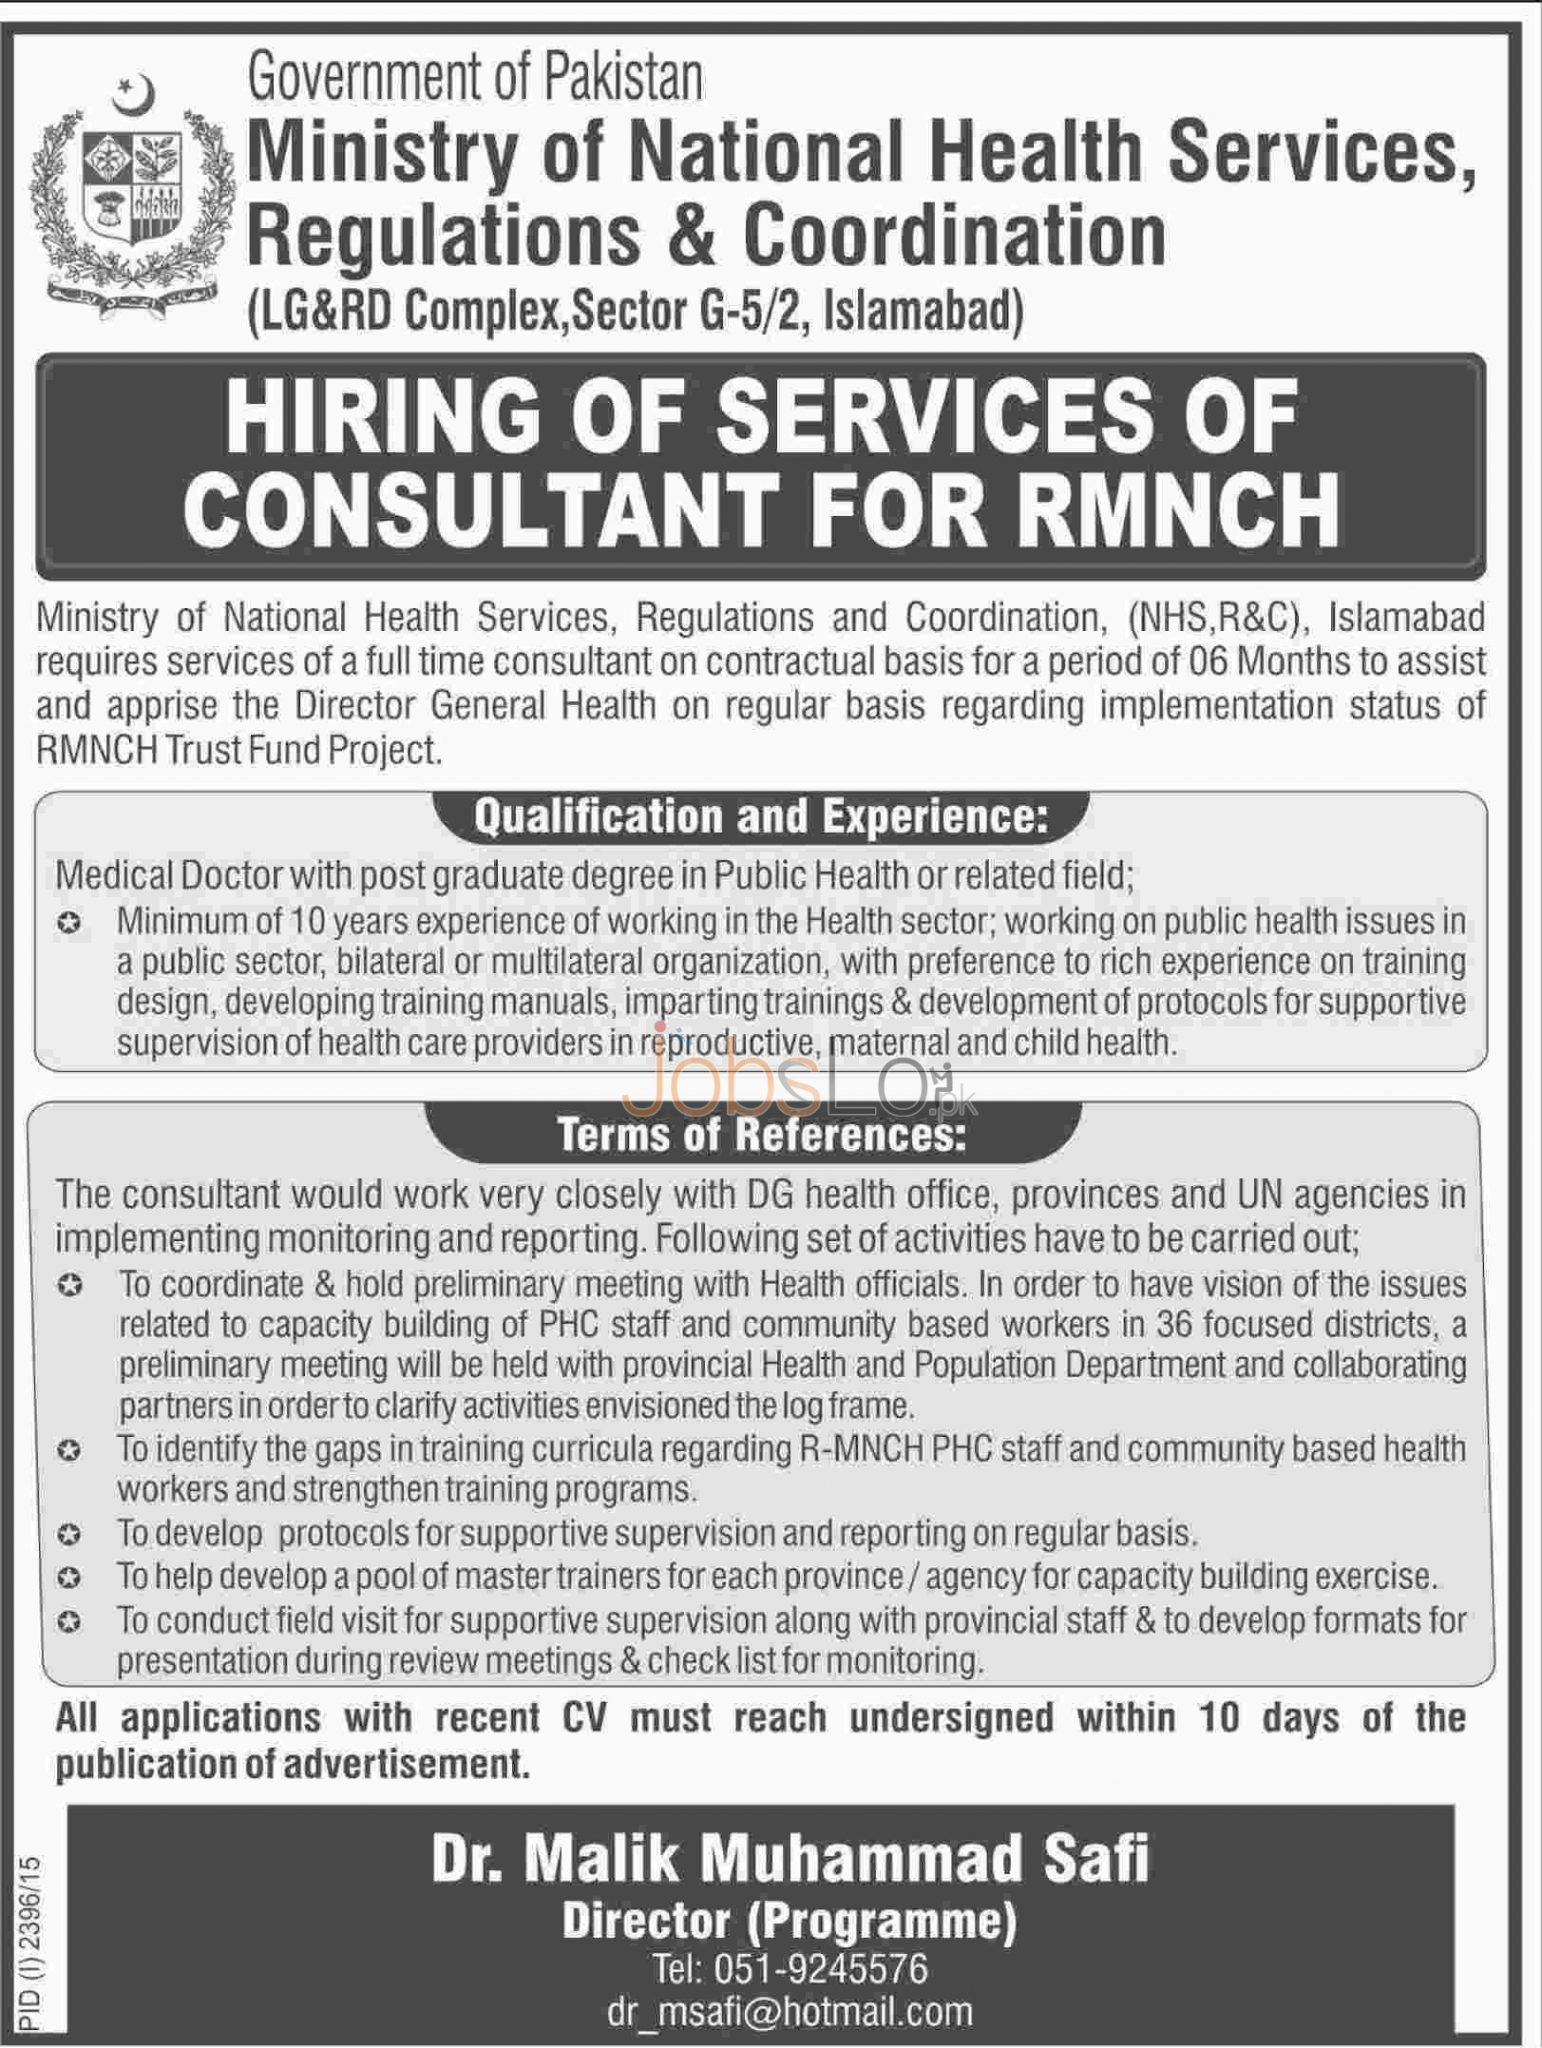 Ministry of National Health Services Jobs